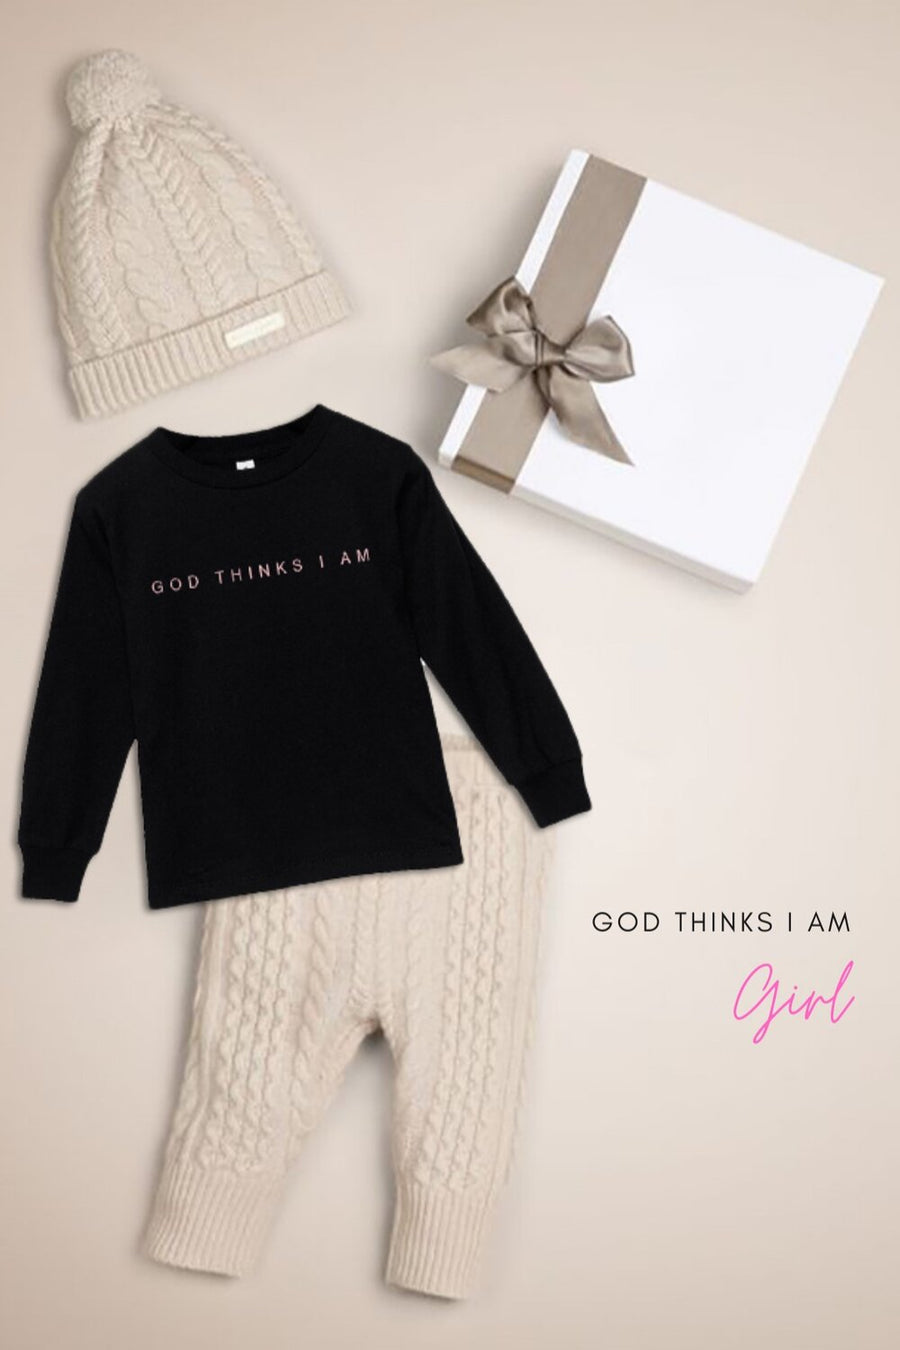 God Thinks I Am Toddler Jersey Long Sleeve Tee 2T-5T